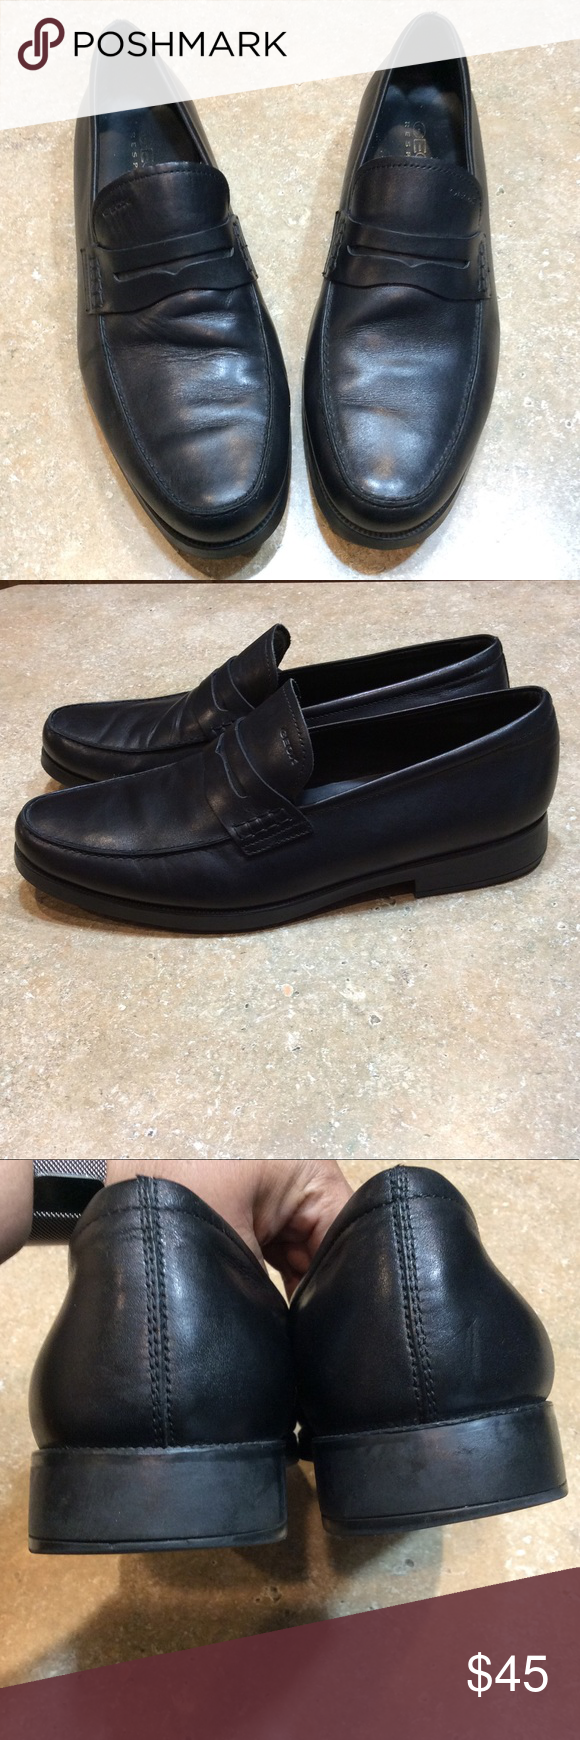 Geox respira black leather loafer   Black leather loafers